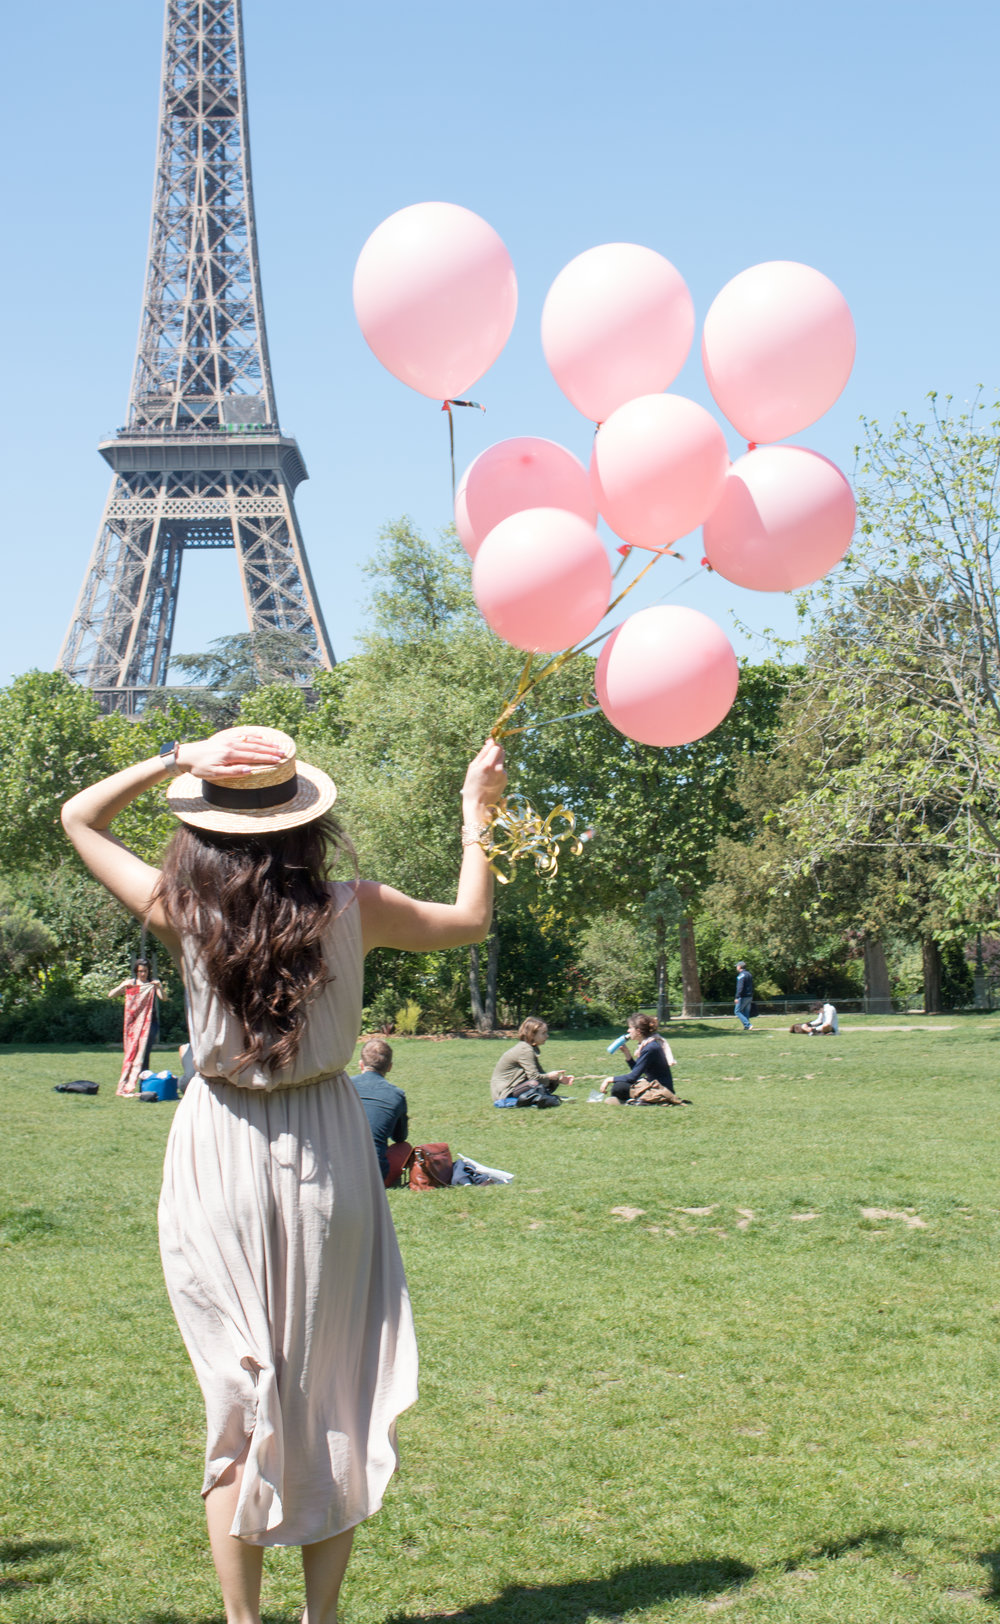 pink balloons at the eiffel tower in paris france